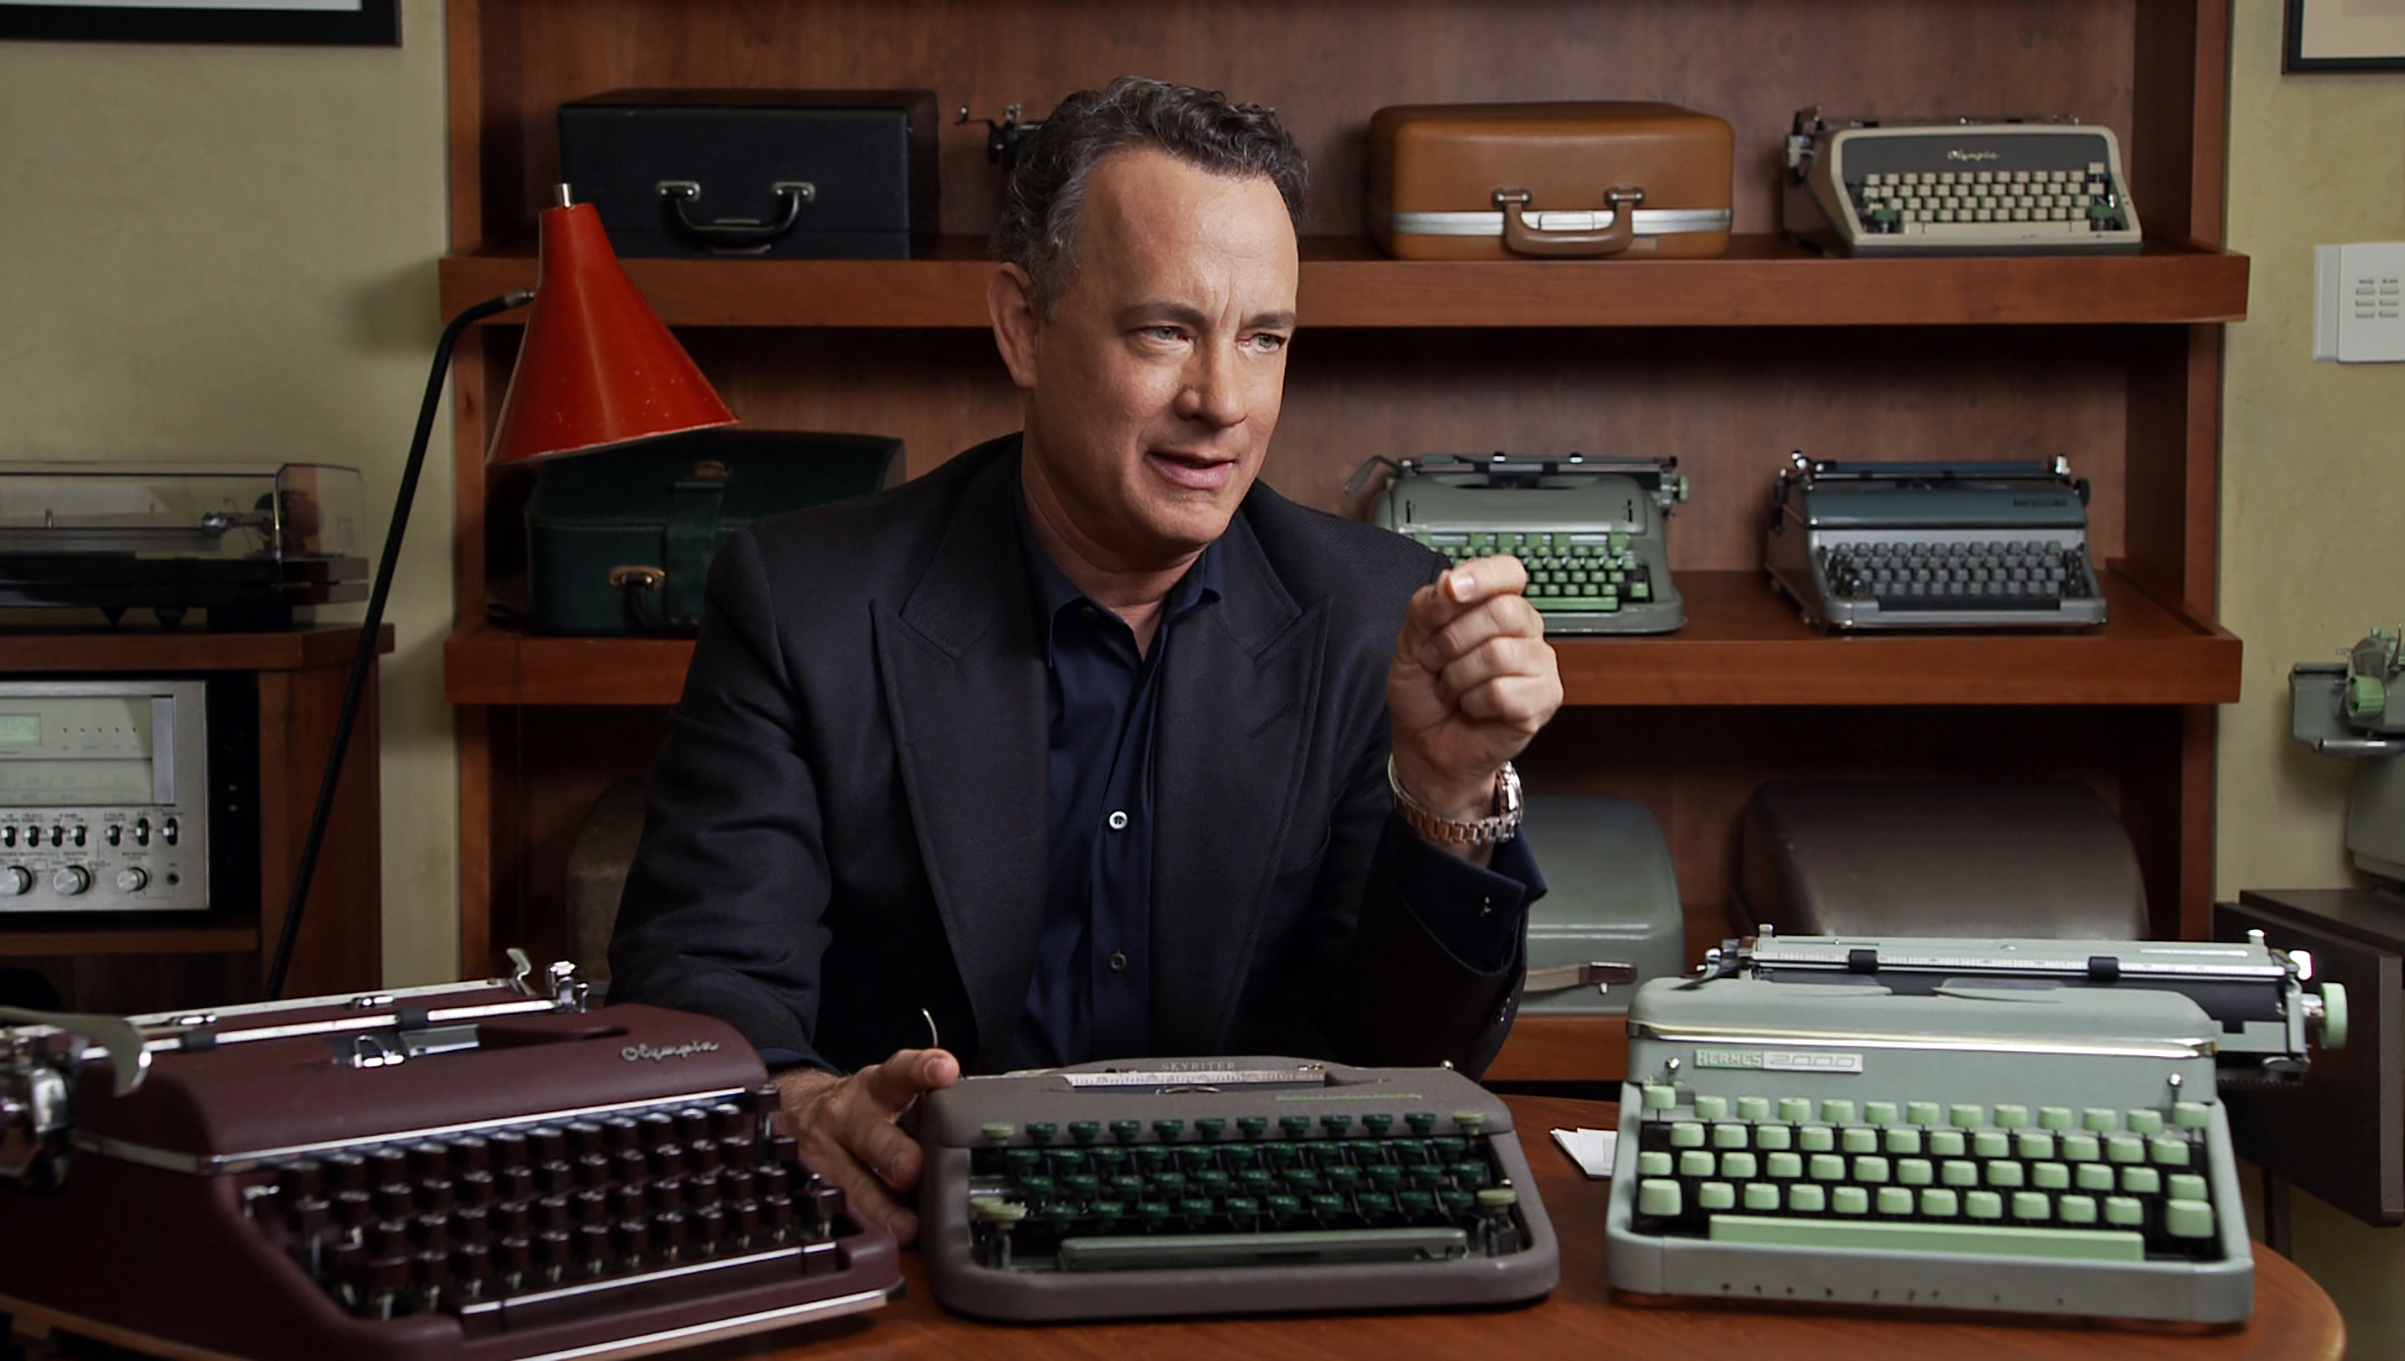 Hanks is certifiably QWERTY